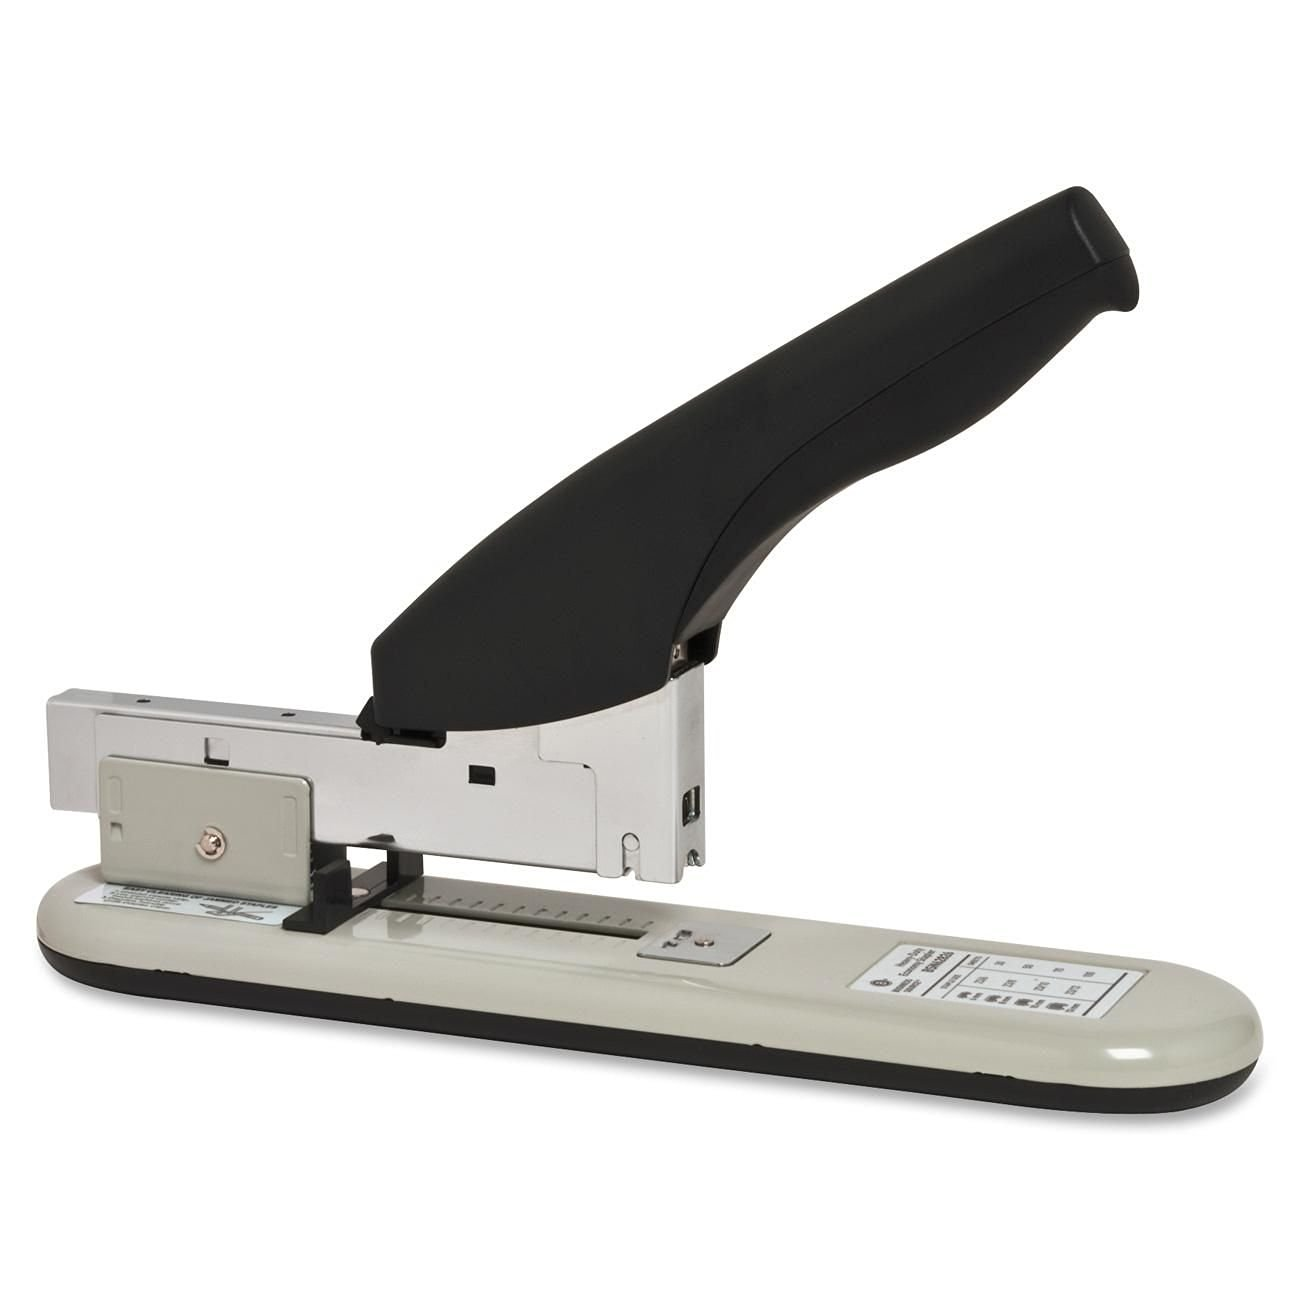 Business Source Heavy Duty Stapler, 100 Sheet Capacity, Putty/Beige (62826)